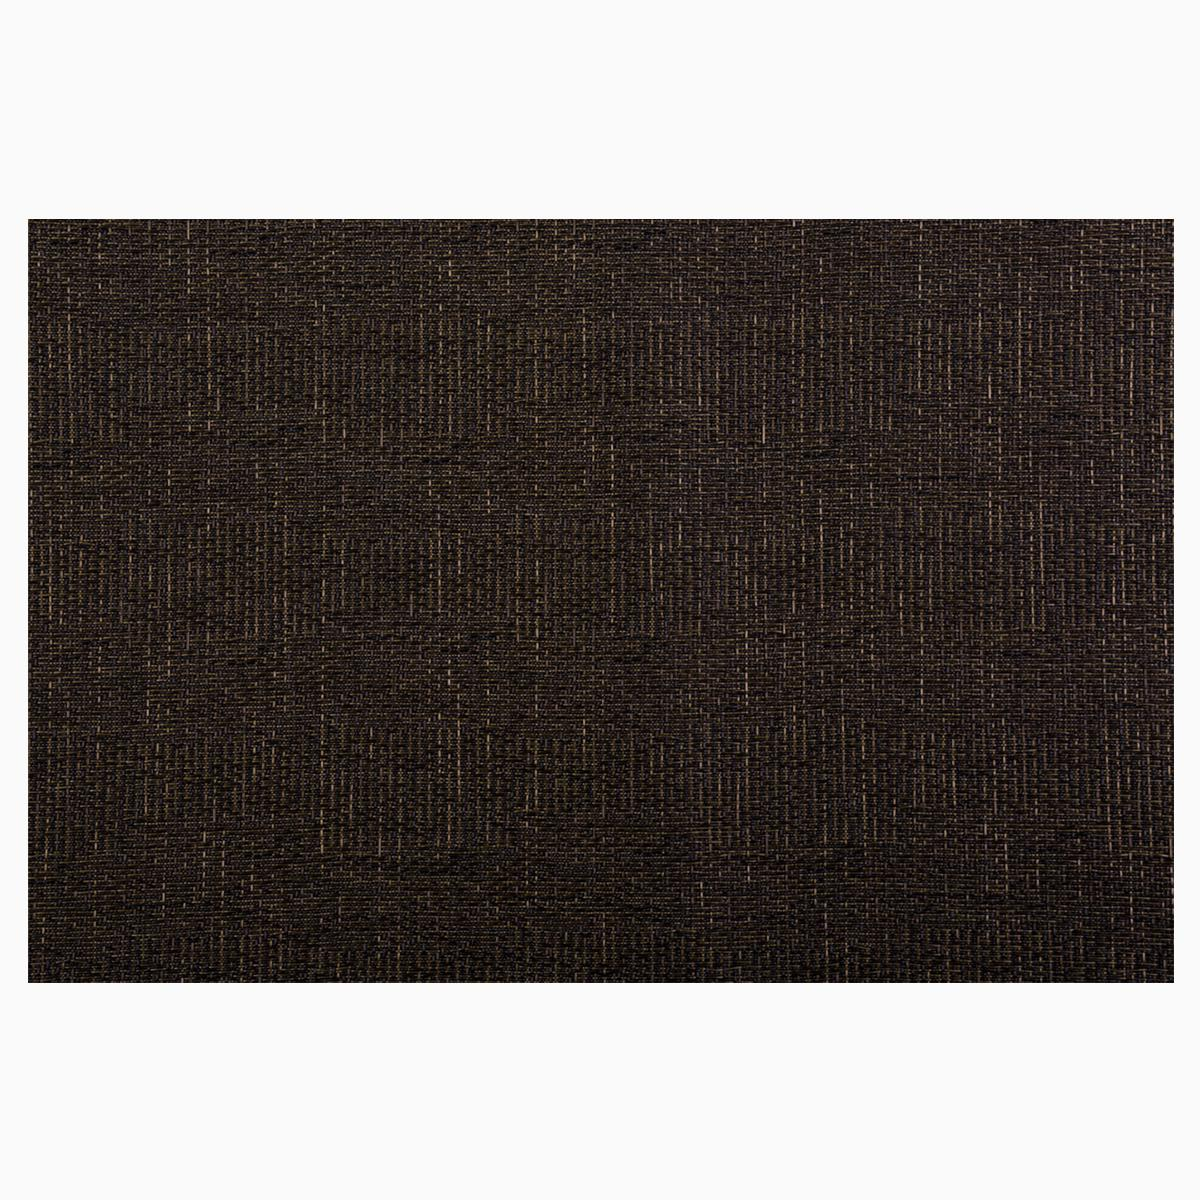 Placemat / Golden-brown